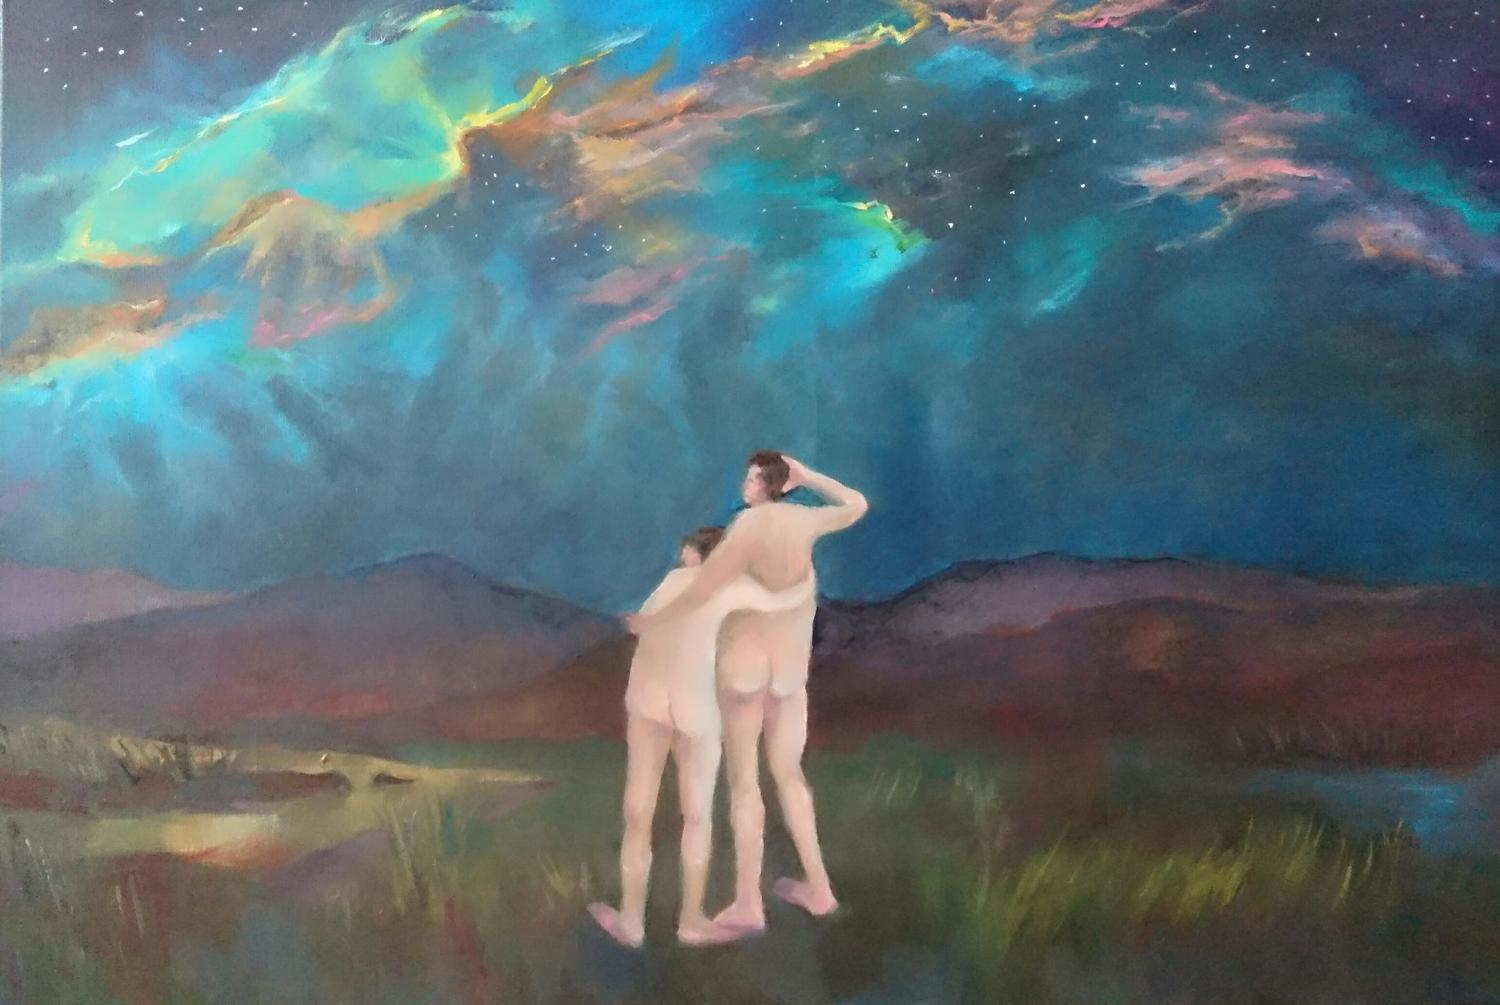 Stargazing (Wanderlust), Oil on Canvas, 2018